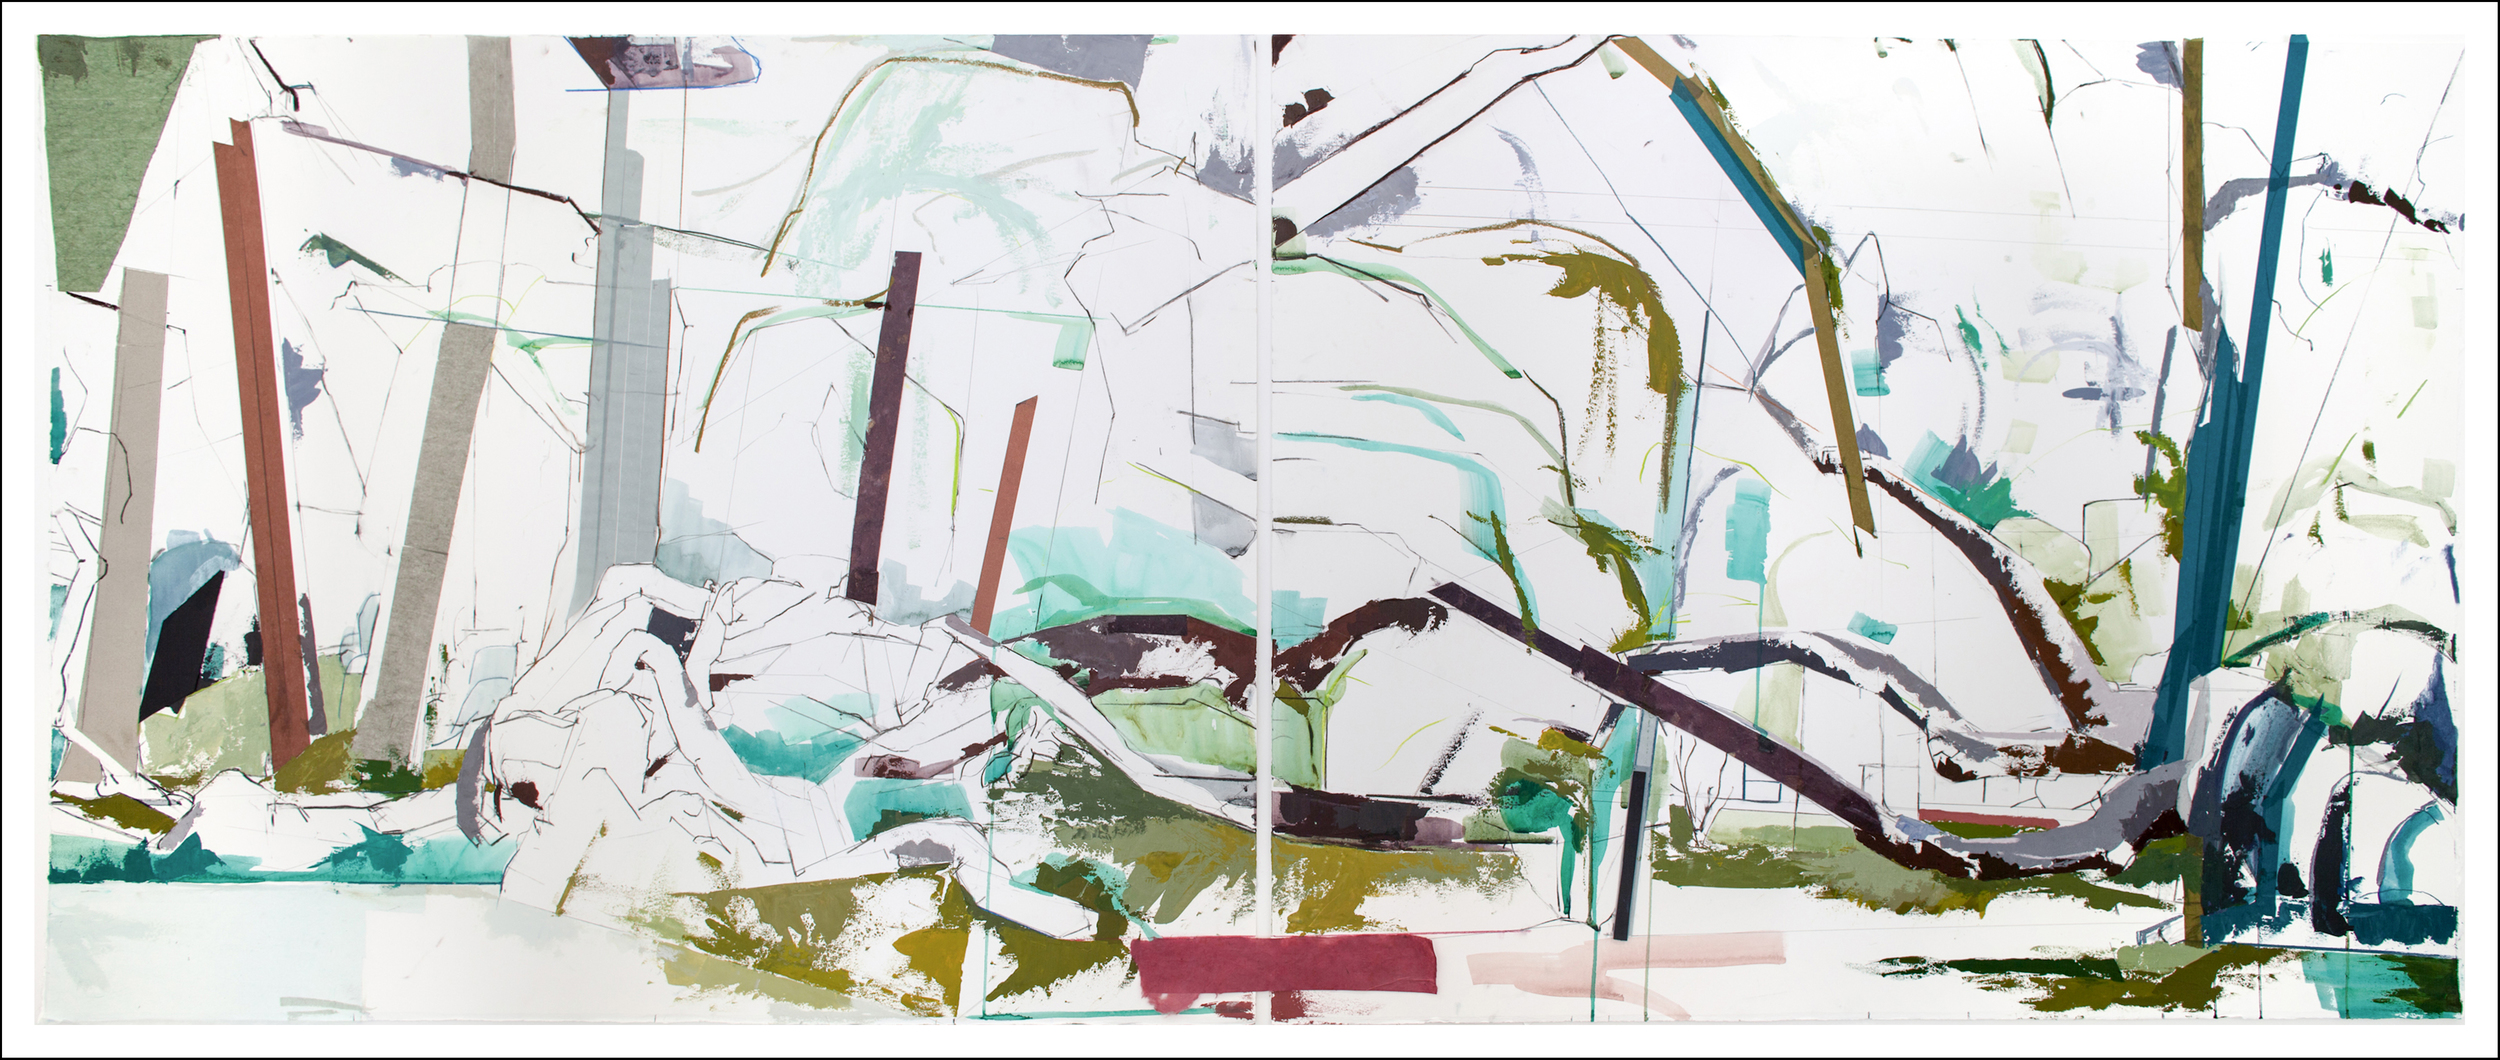 Untitled Diptych Paris/SF,   2012, Mixed-media on paper  (29.5 inches x 72 inches) (unframed) SOLD